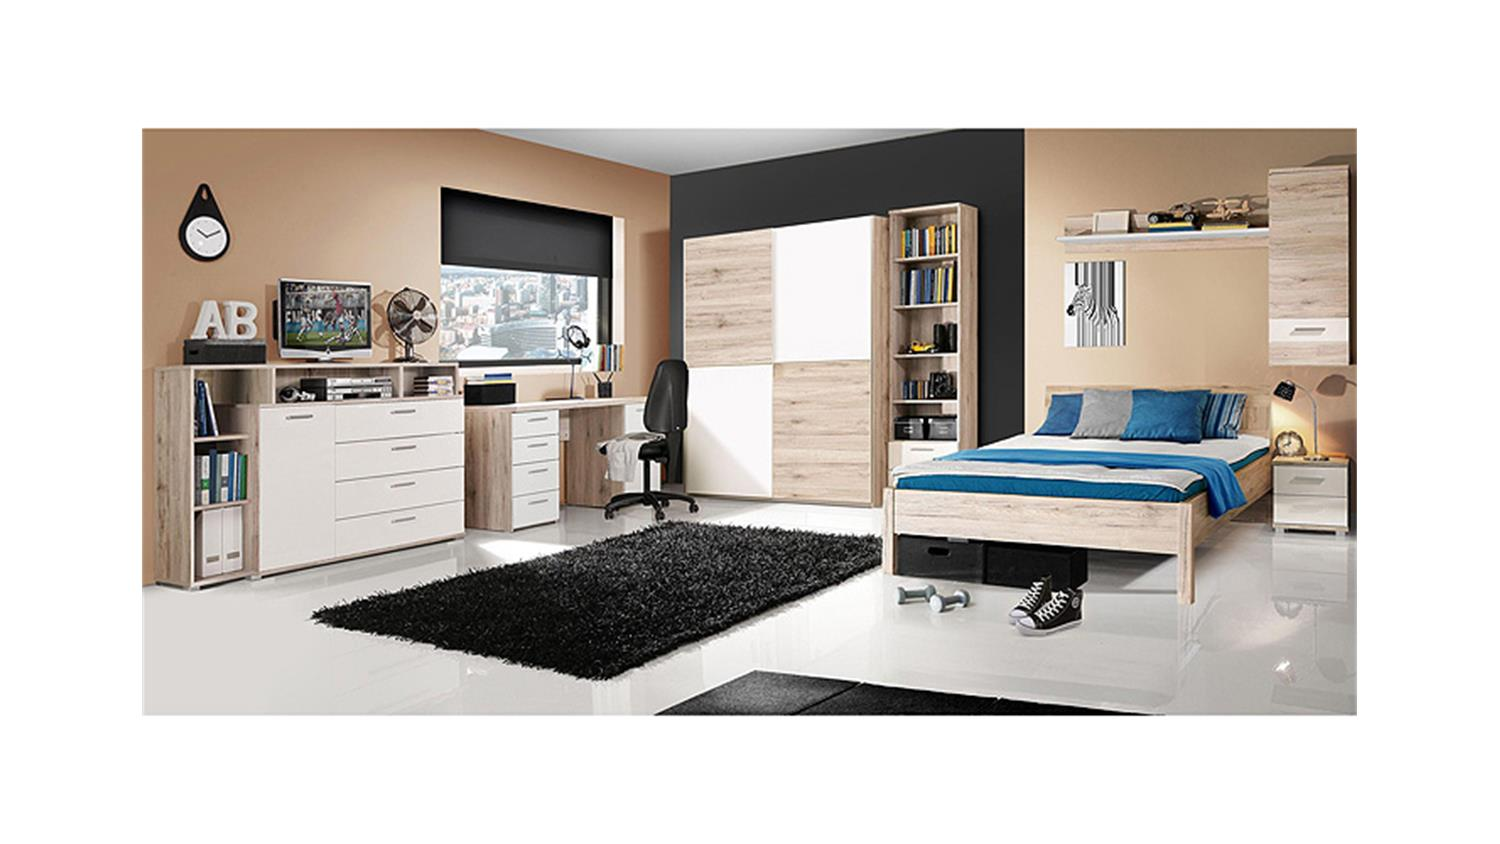 schrank 150 cm breit wei e kinderkleiderschr nke online. Black Bedroom Furniture Sets. Home Design Ideas